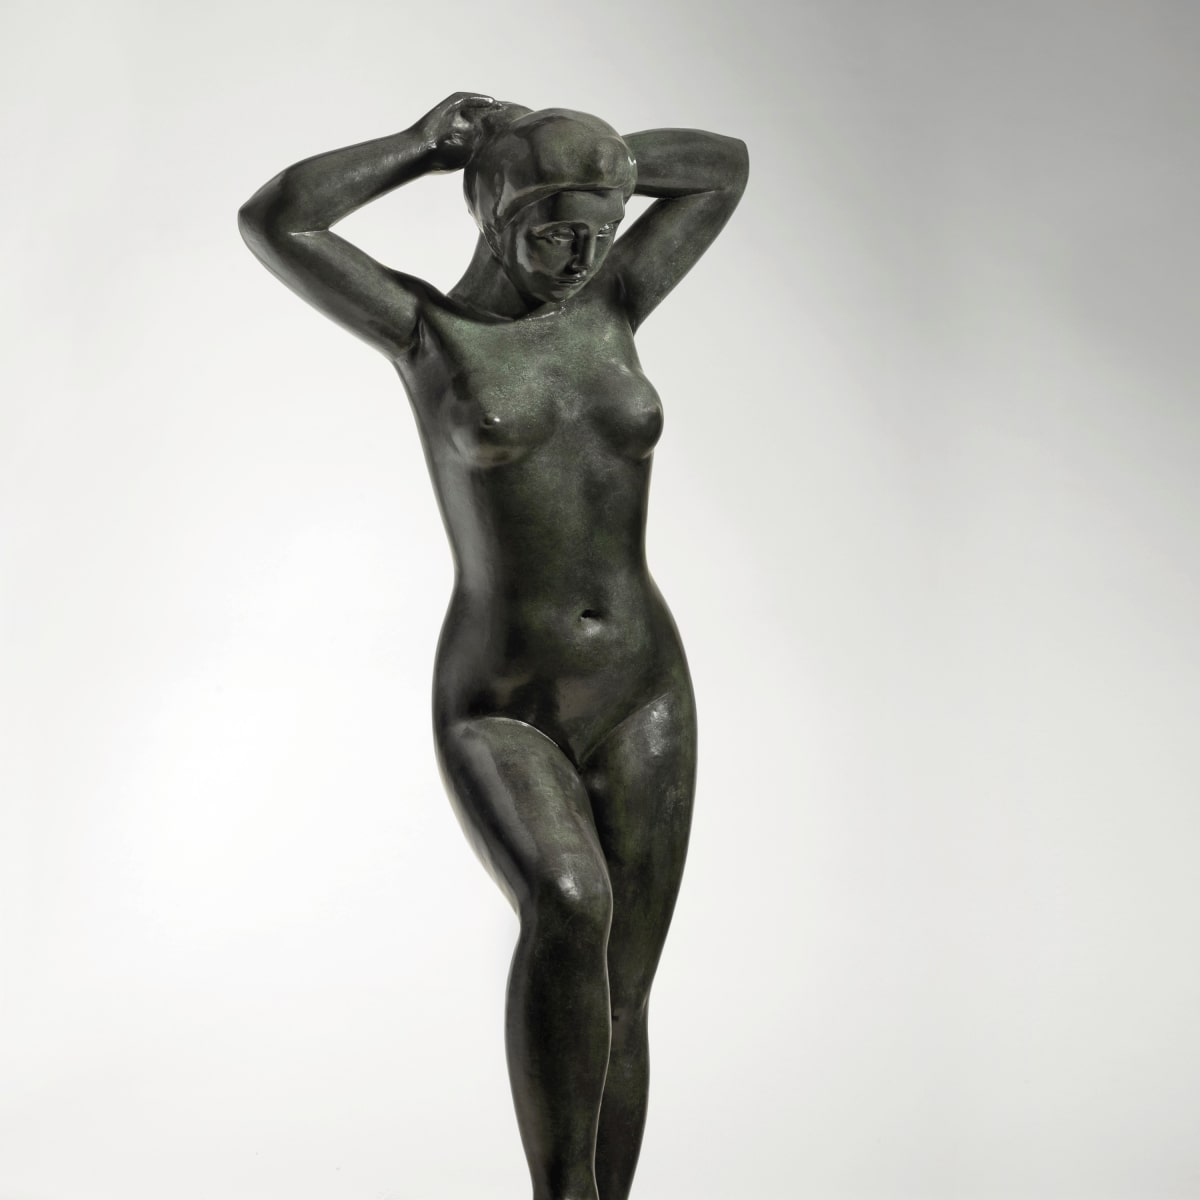 Maillol_Bather with raised arms, Bass art